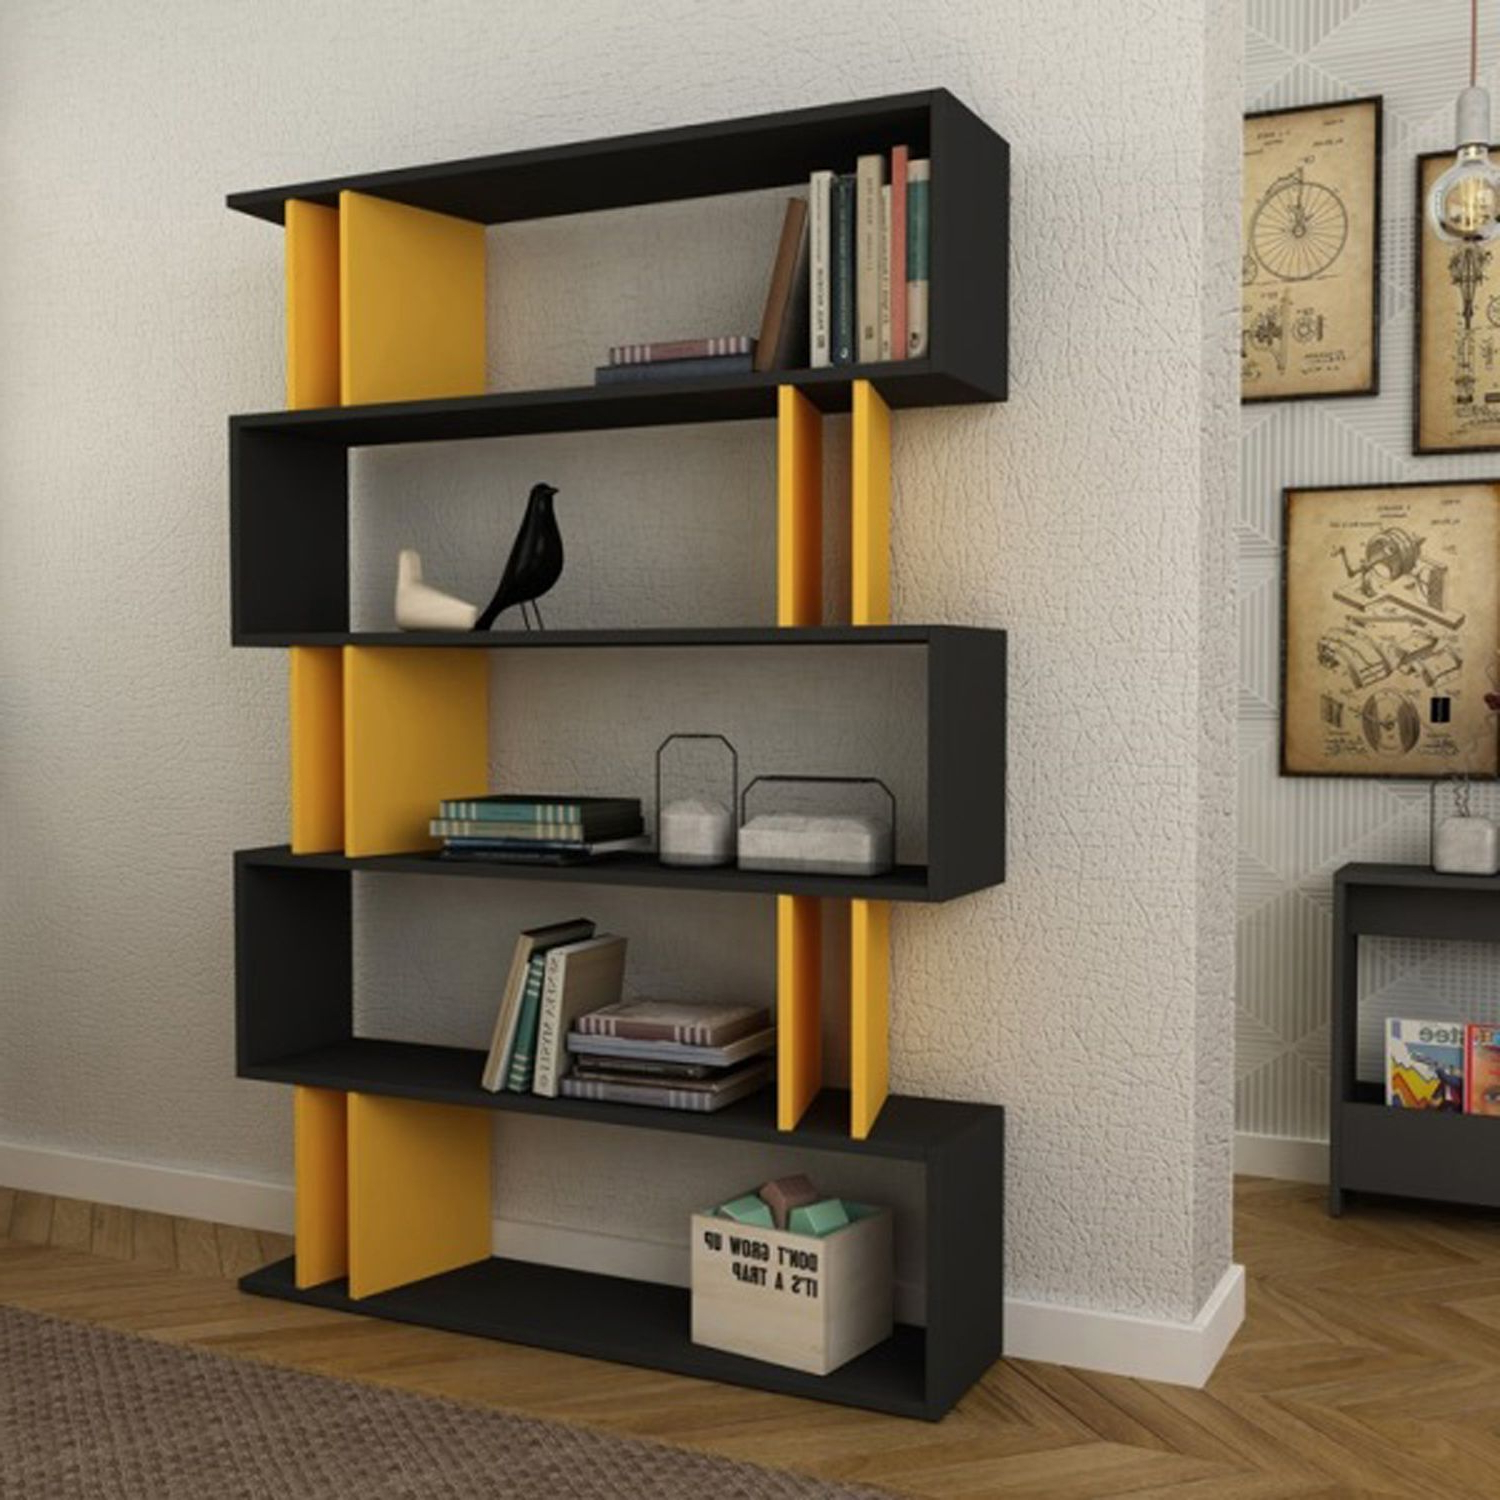 Blairs Etagere Bookcases Inside Most Recent Elias Anthracite & Mustard Bookcase (View 2 of 20)